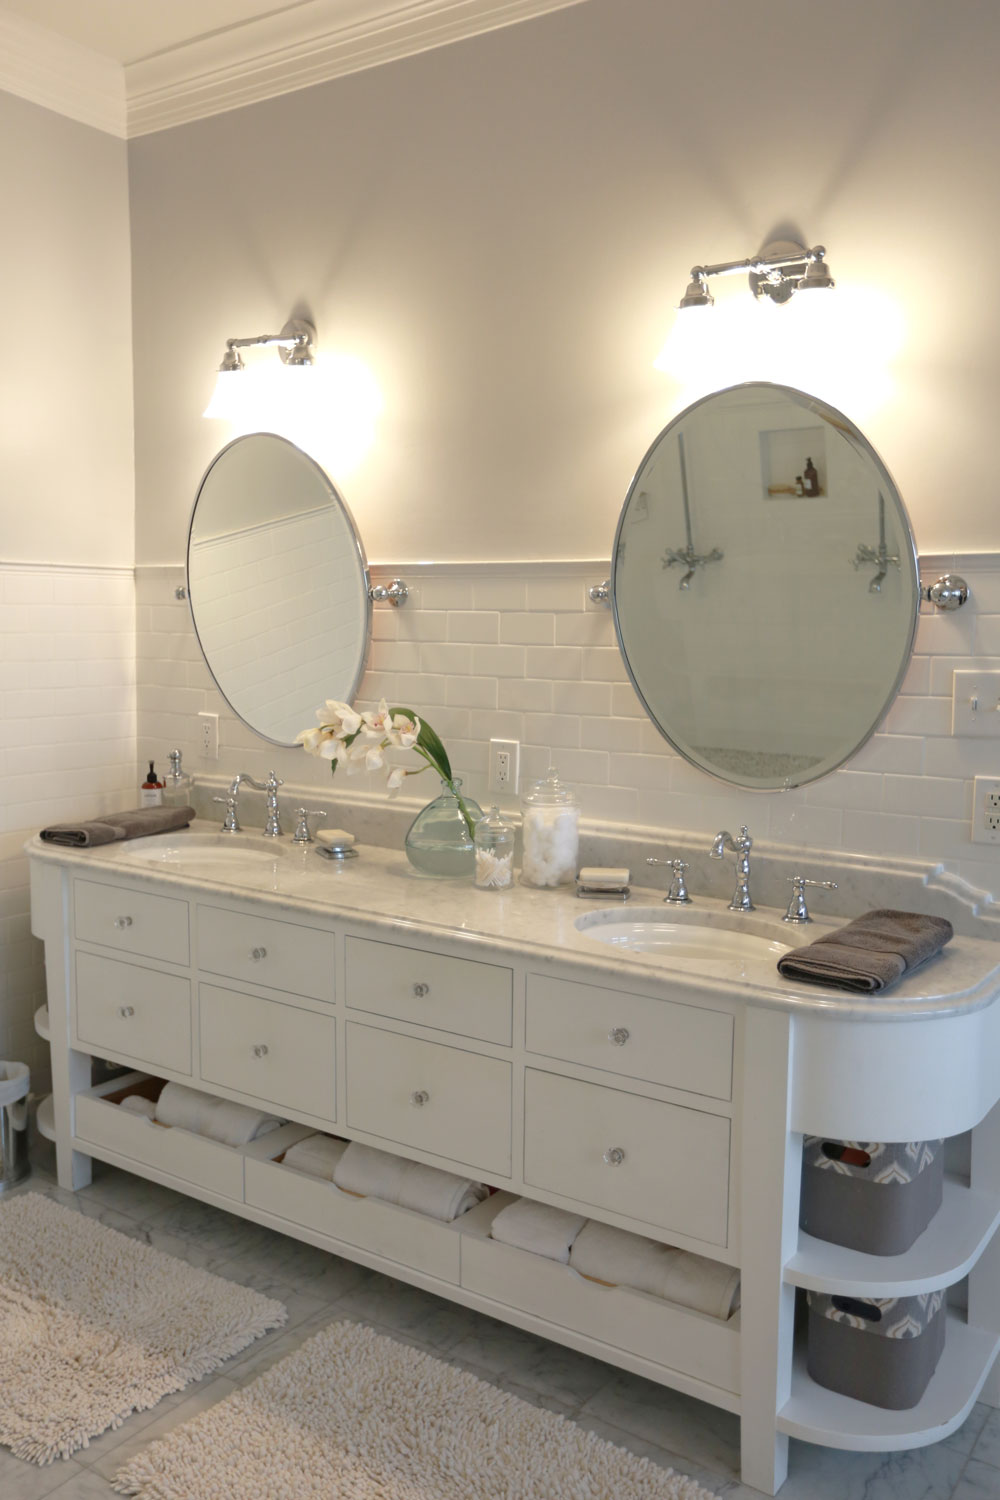 Liz-Light-interiors-Bathroom-24.jpg